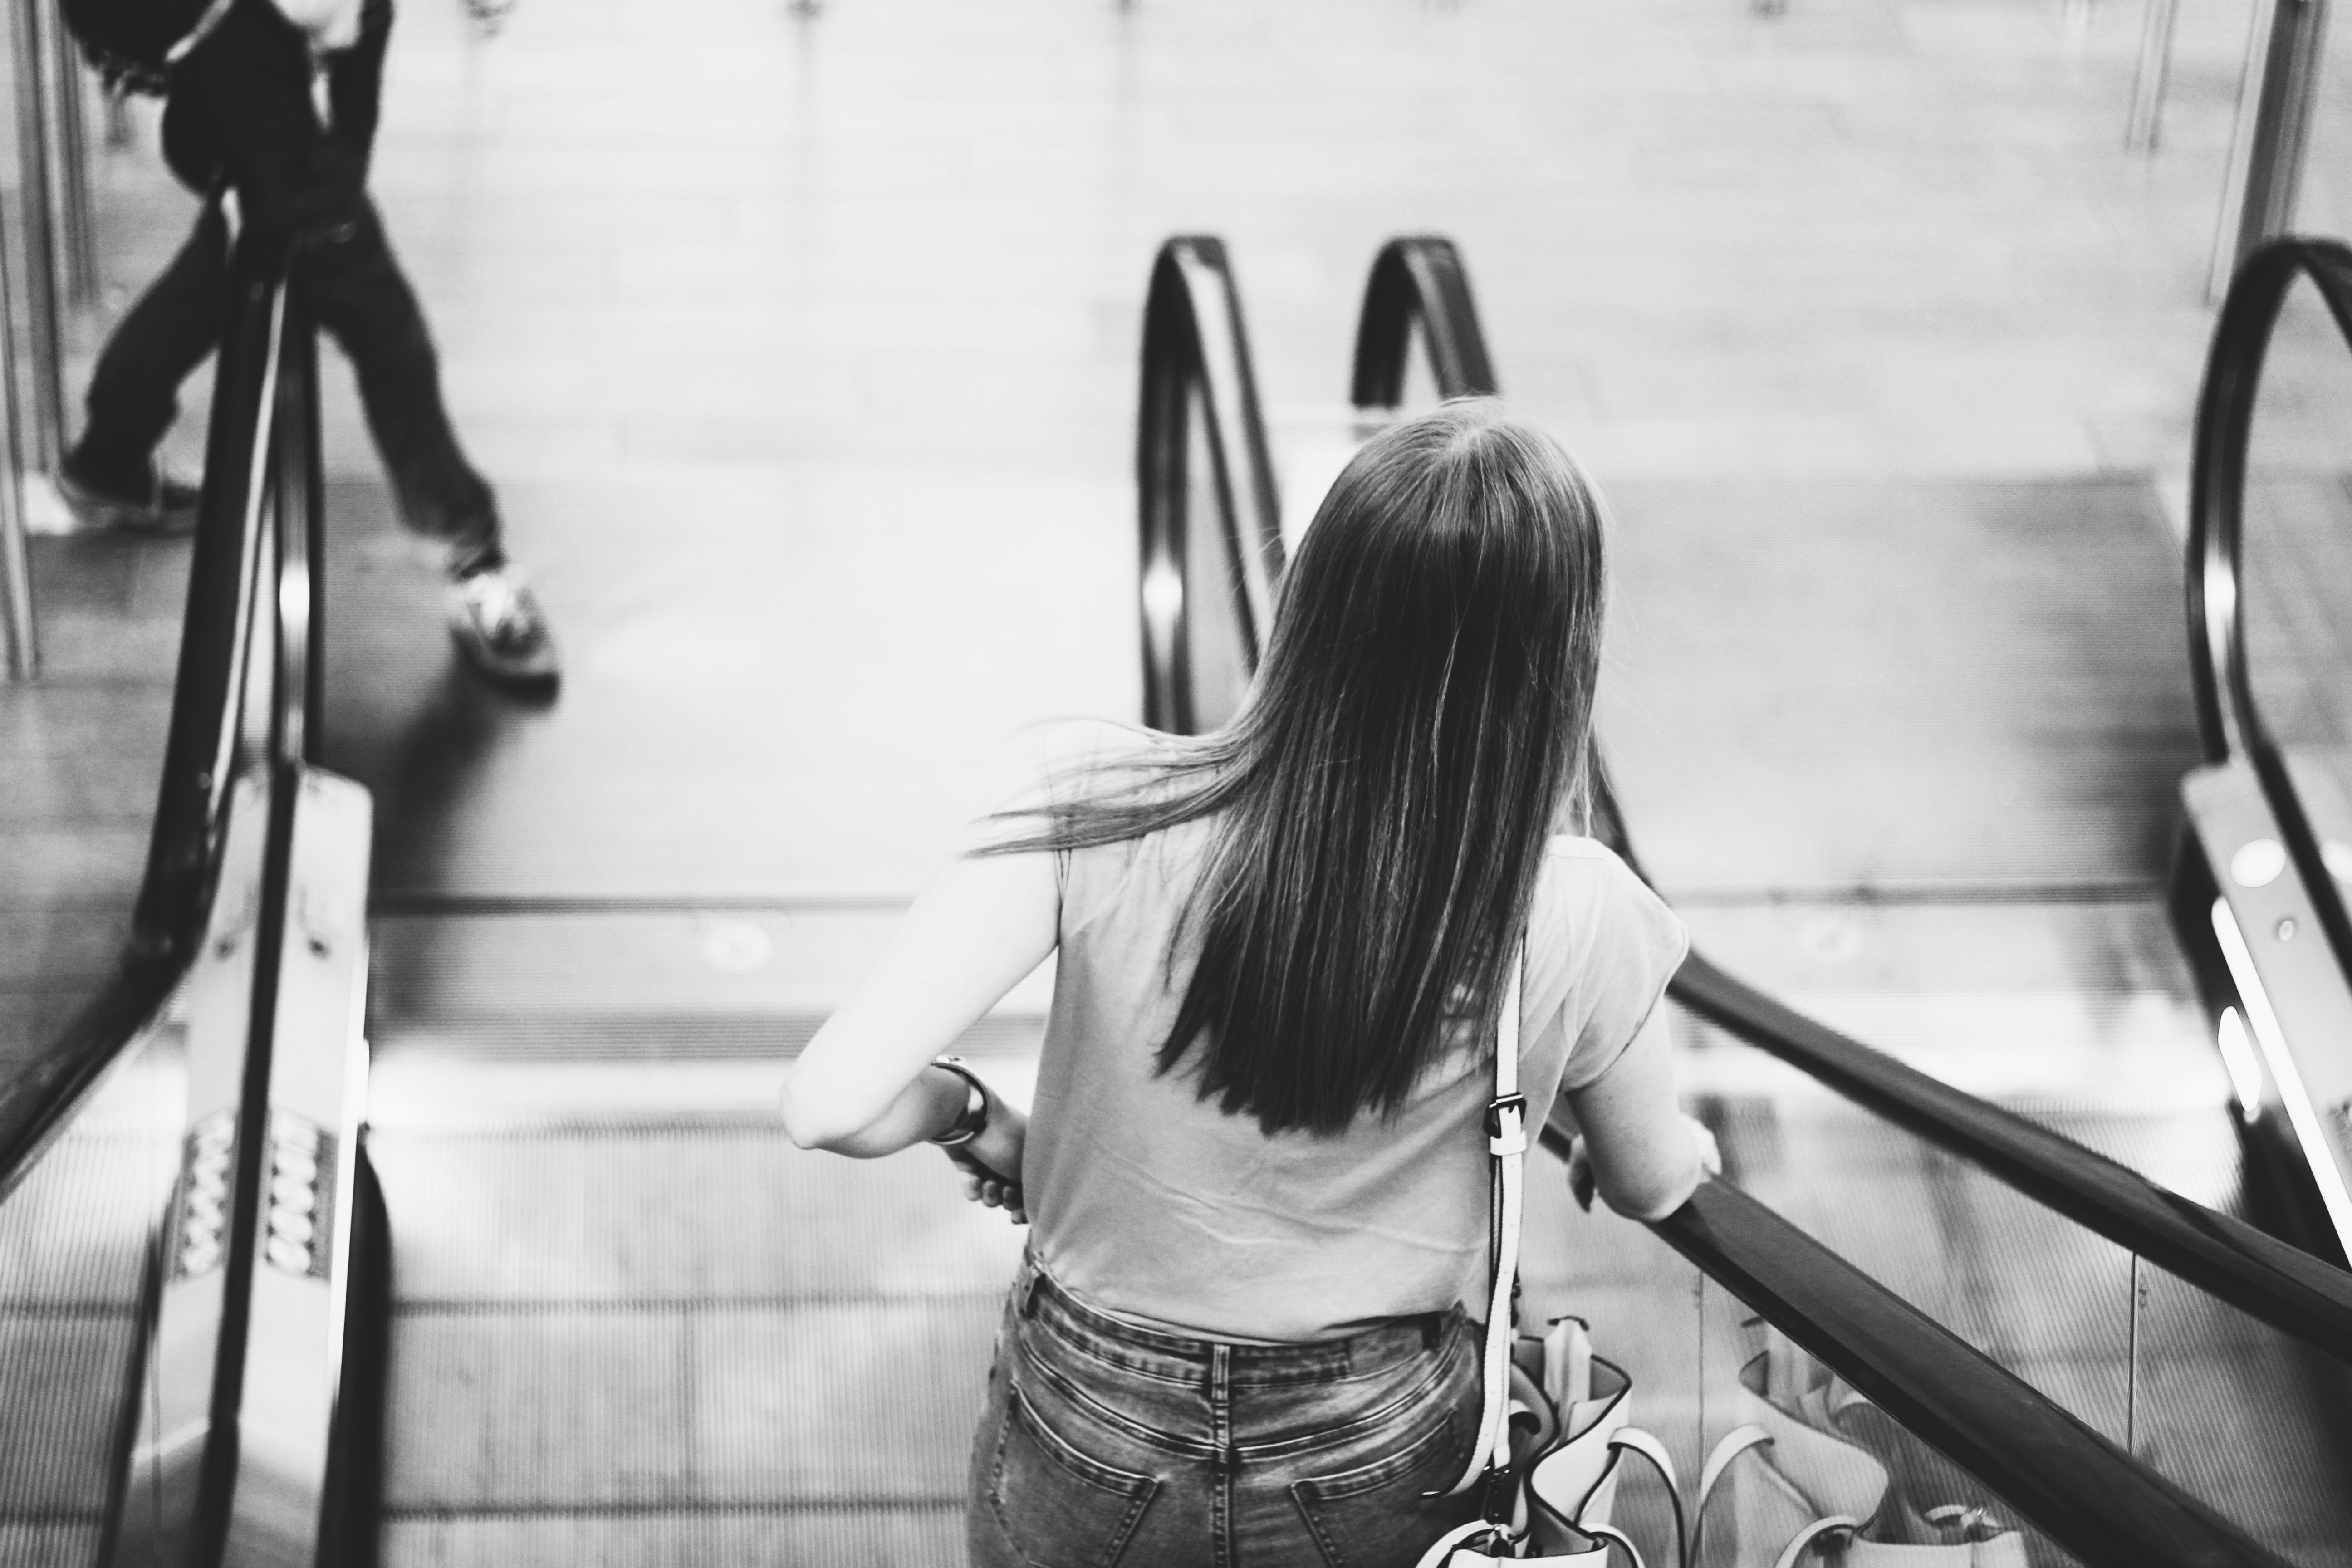 Monochrome Photography of Woman on the Escalator